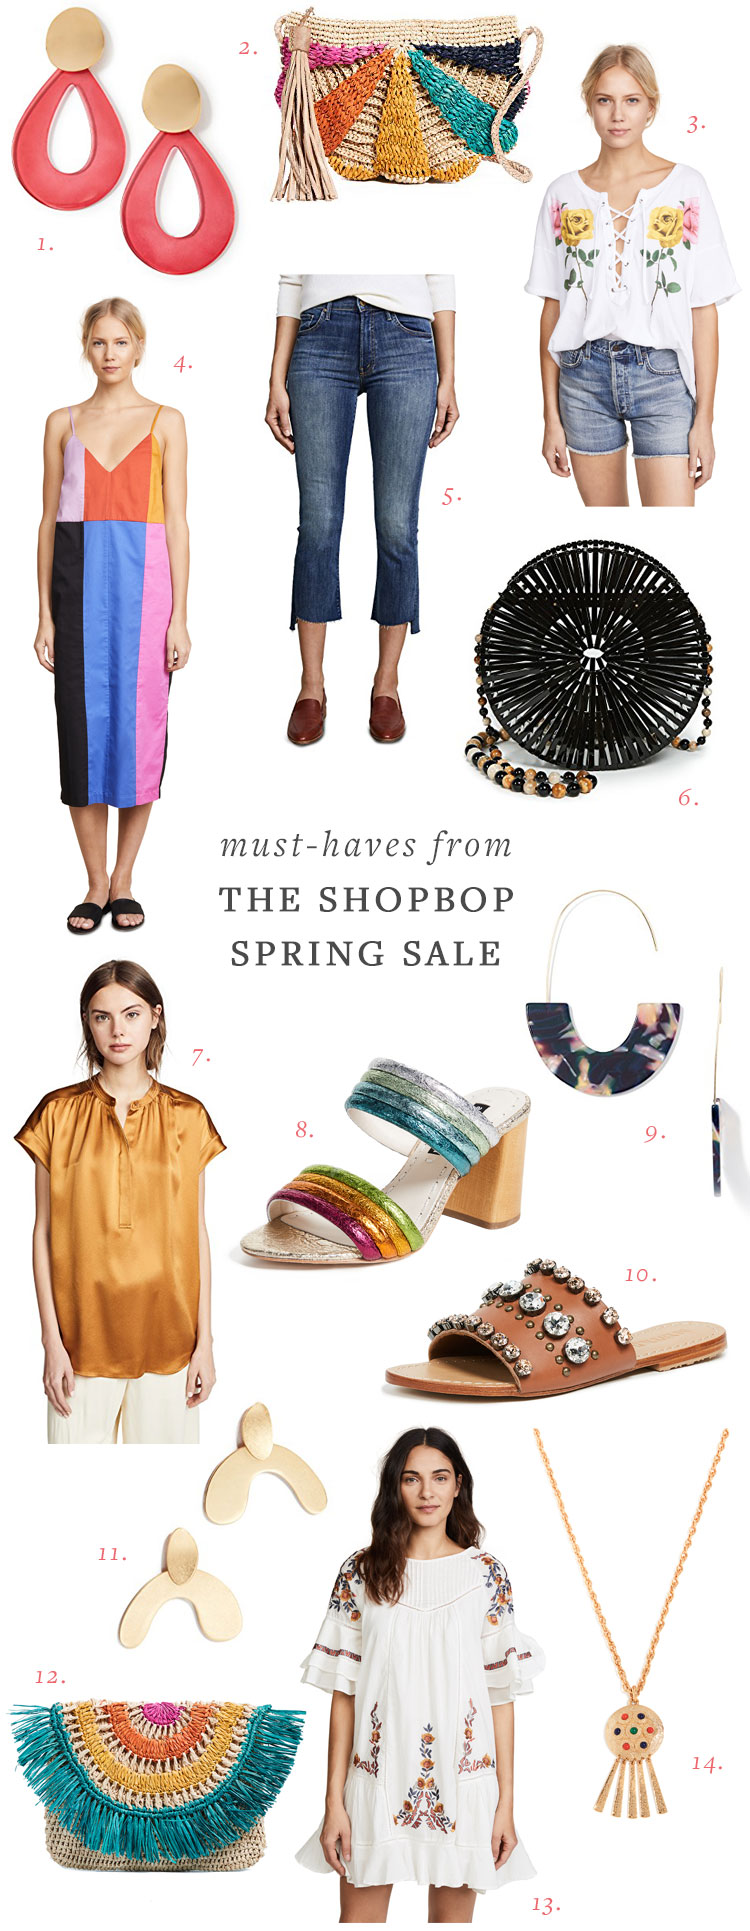 spring fashion must-haves from the @shopbop sale with to 25% off! #springfashion #whattowear #fashion #sale #shopbop #springsale